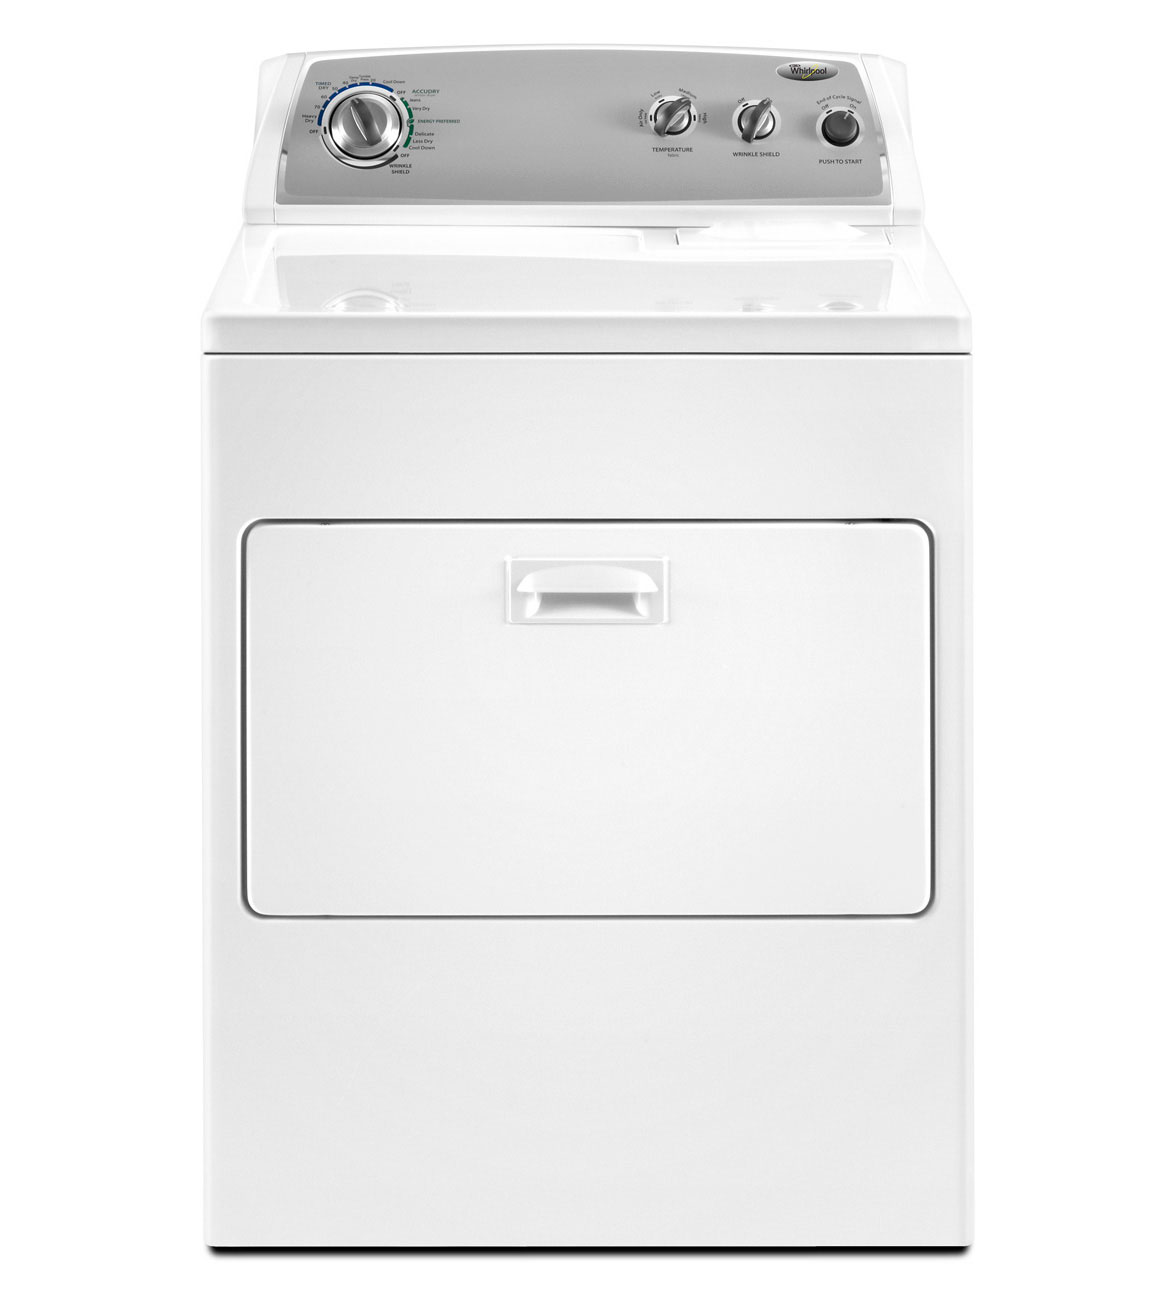 Whirlpool Traditional Electric Dryer with AccuDry Drying System (Model: WED4900XW)